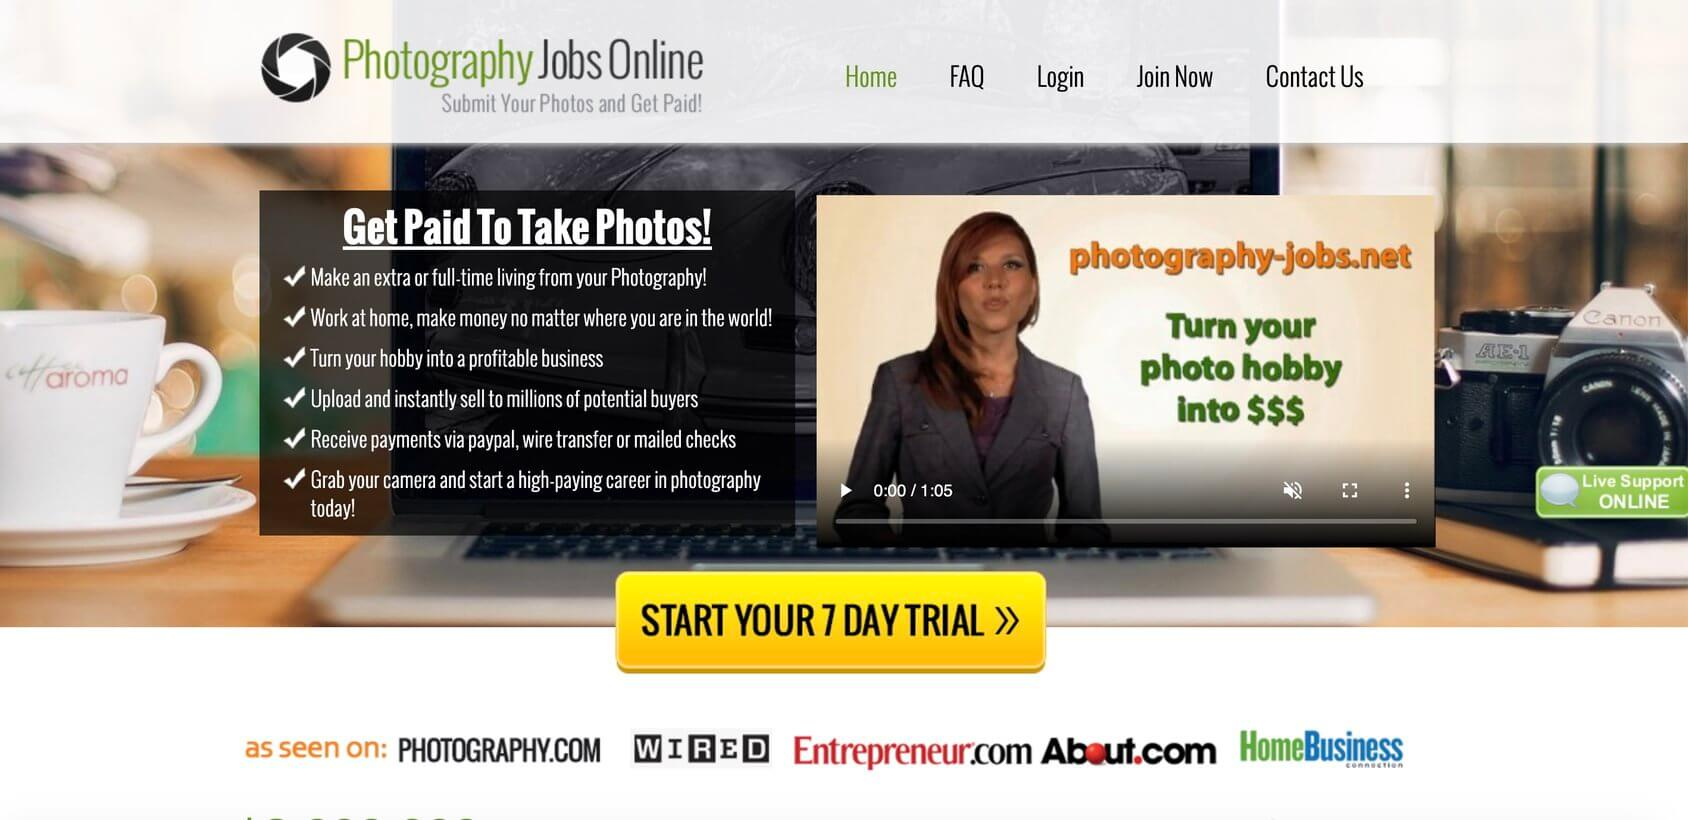 Photography Jobs Online